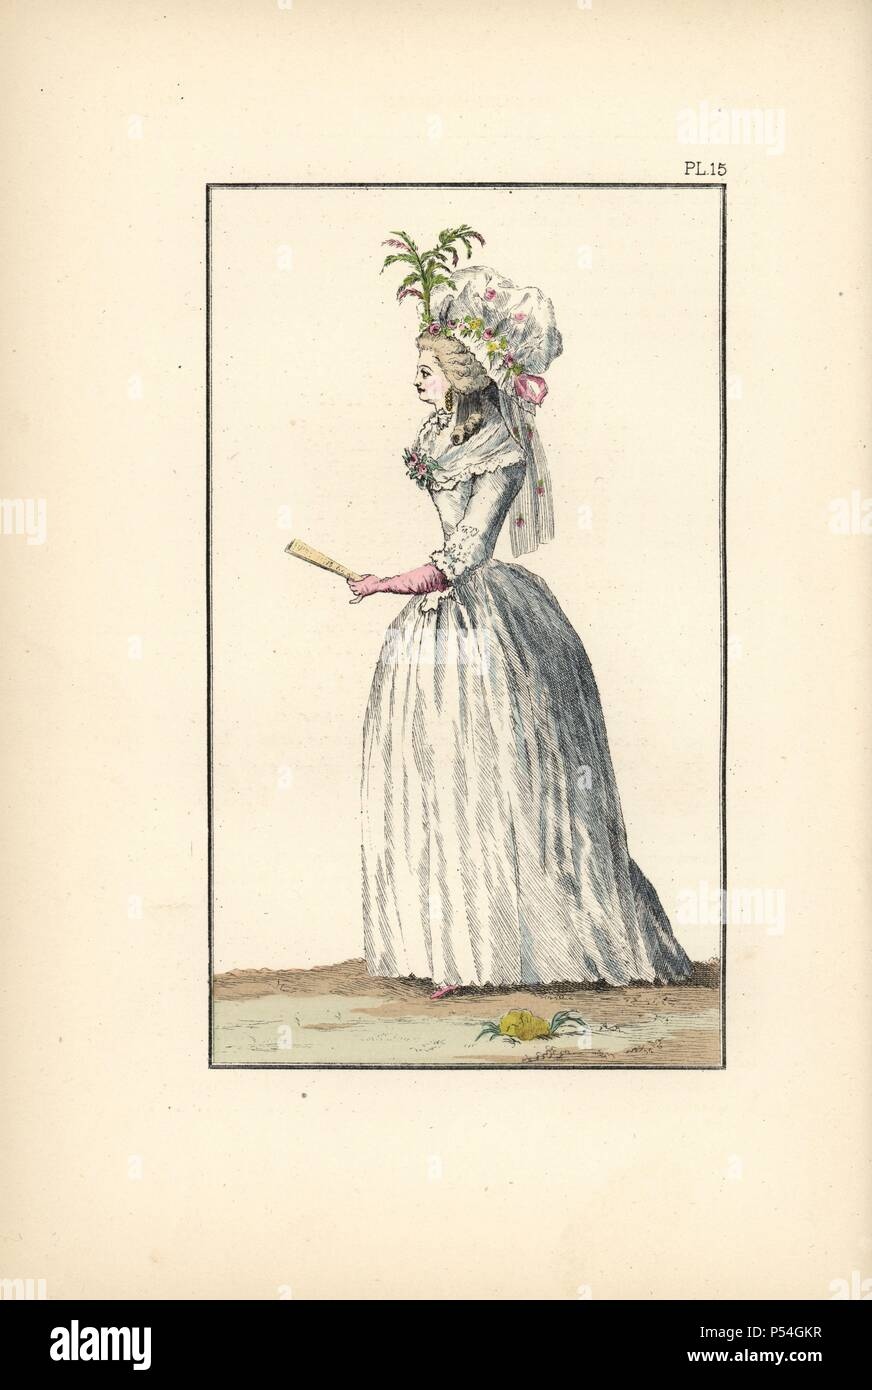 """Bearnaise hat, in honour of Henri IV. Hand-colored lithograph from """"Fashions and Customs of Marie Antoinette and her Times,"""" by Le Comte de Reiset, Paris, 1885. The journal of Madame Eloffe, dressmaker and linen-merchant to the Queen and ladies of the court. Stock Photo"""